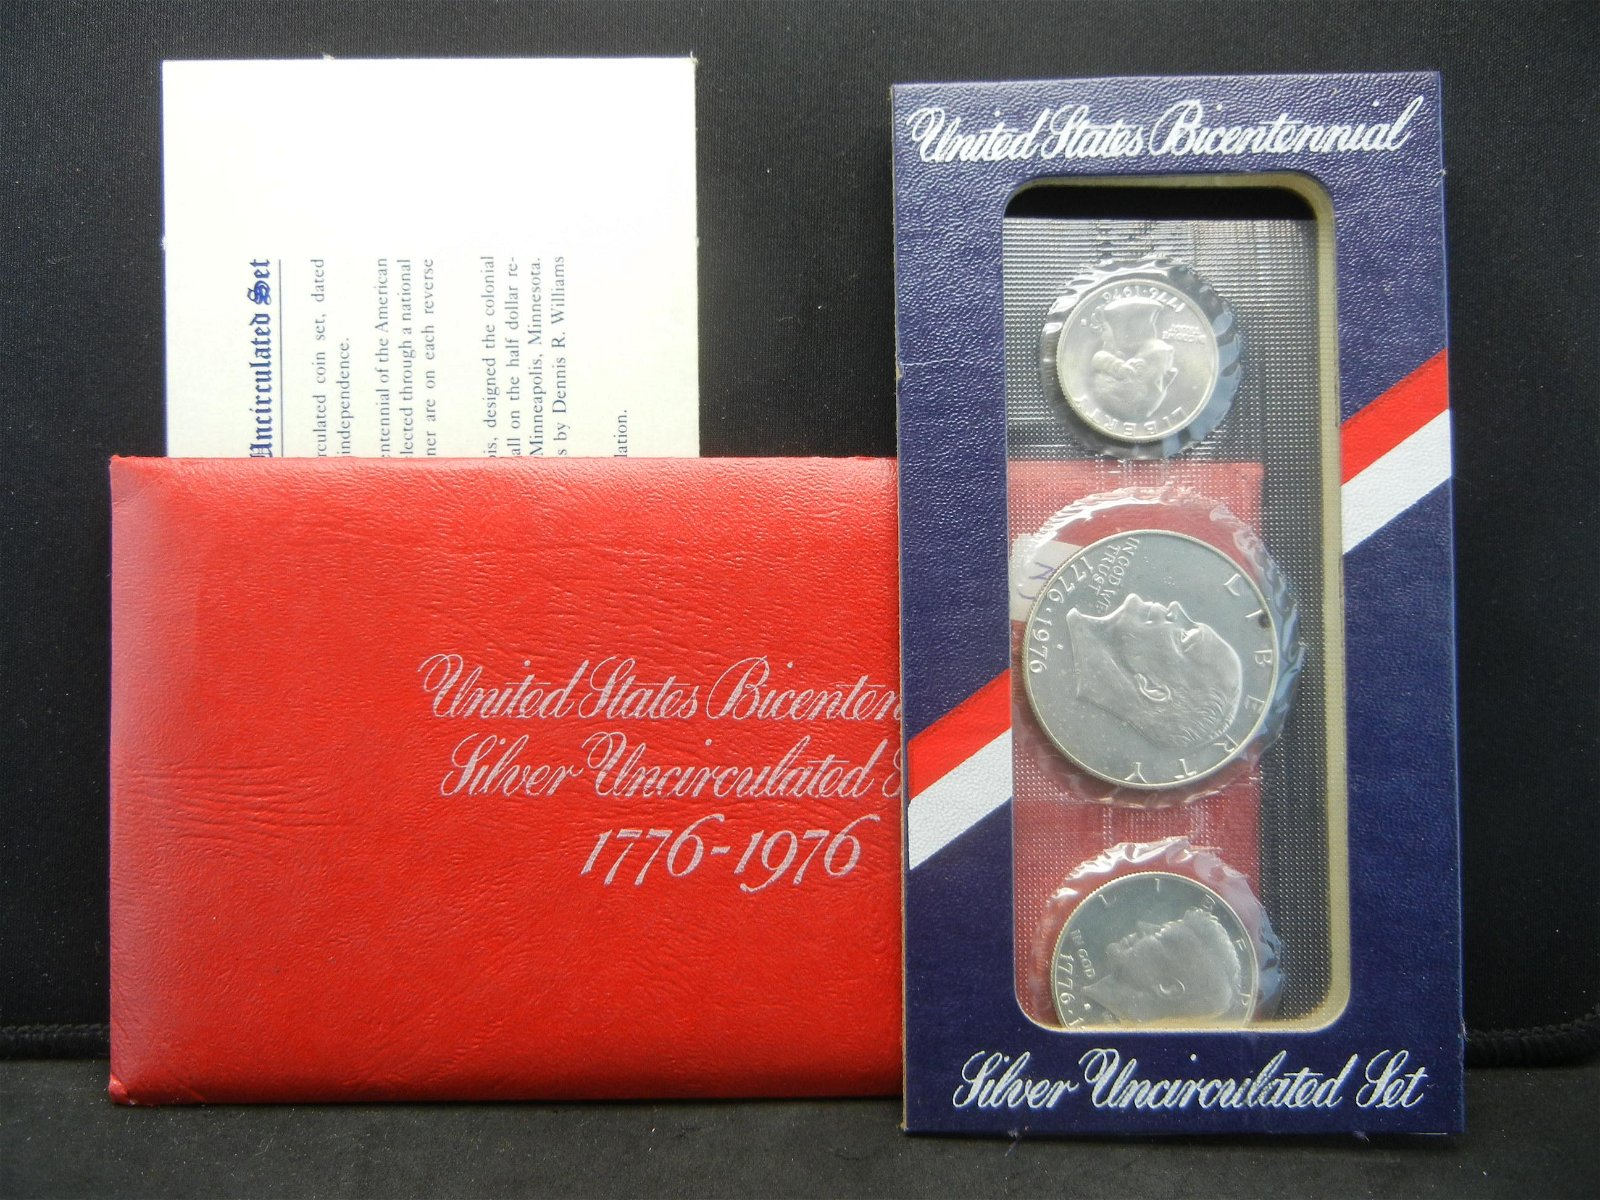 1976 3 Coin 40 Silver Uncirculated Set In Original